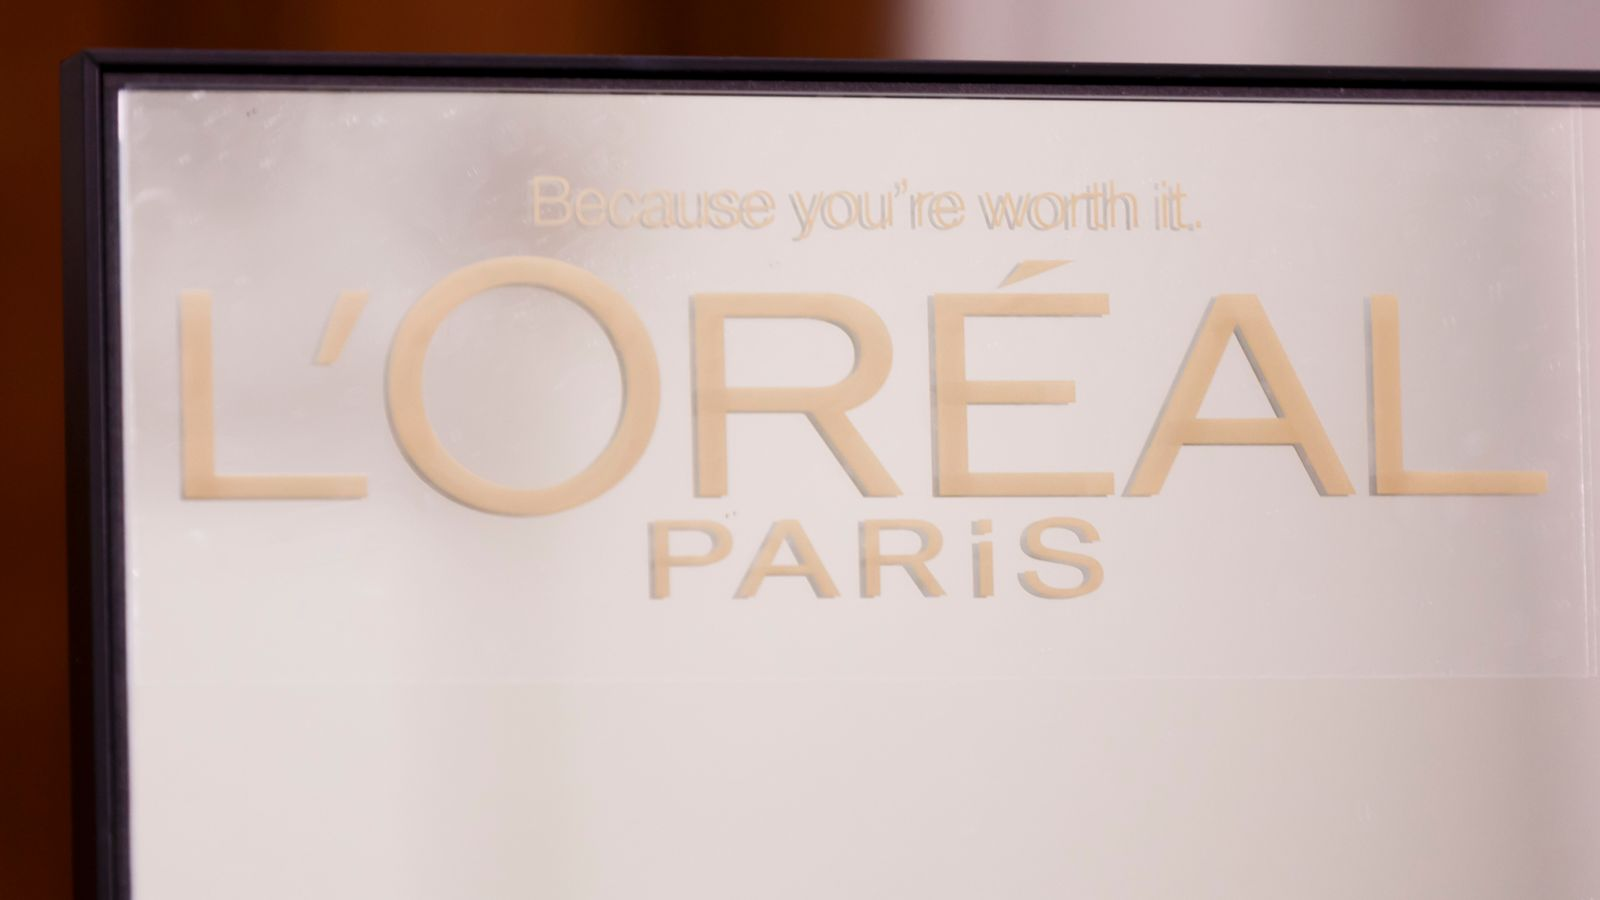 L'Oreal to remove words like 'whitening' from all skincare products | World News